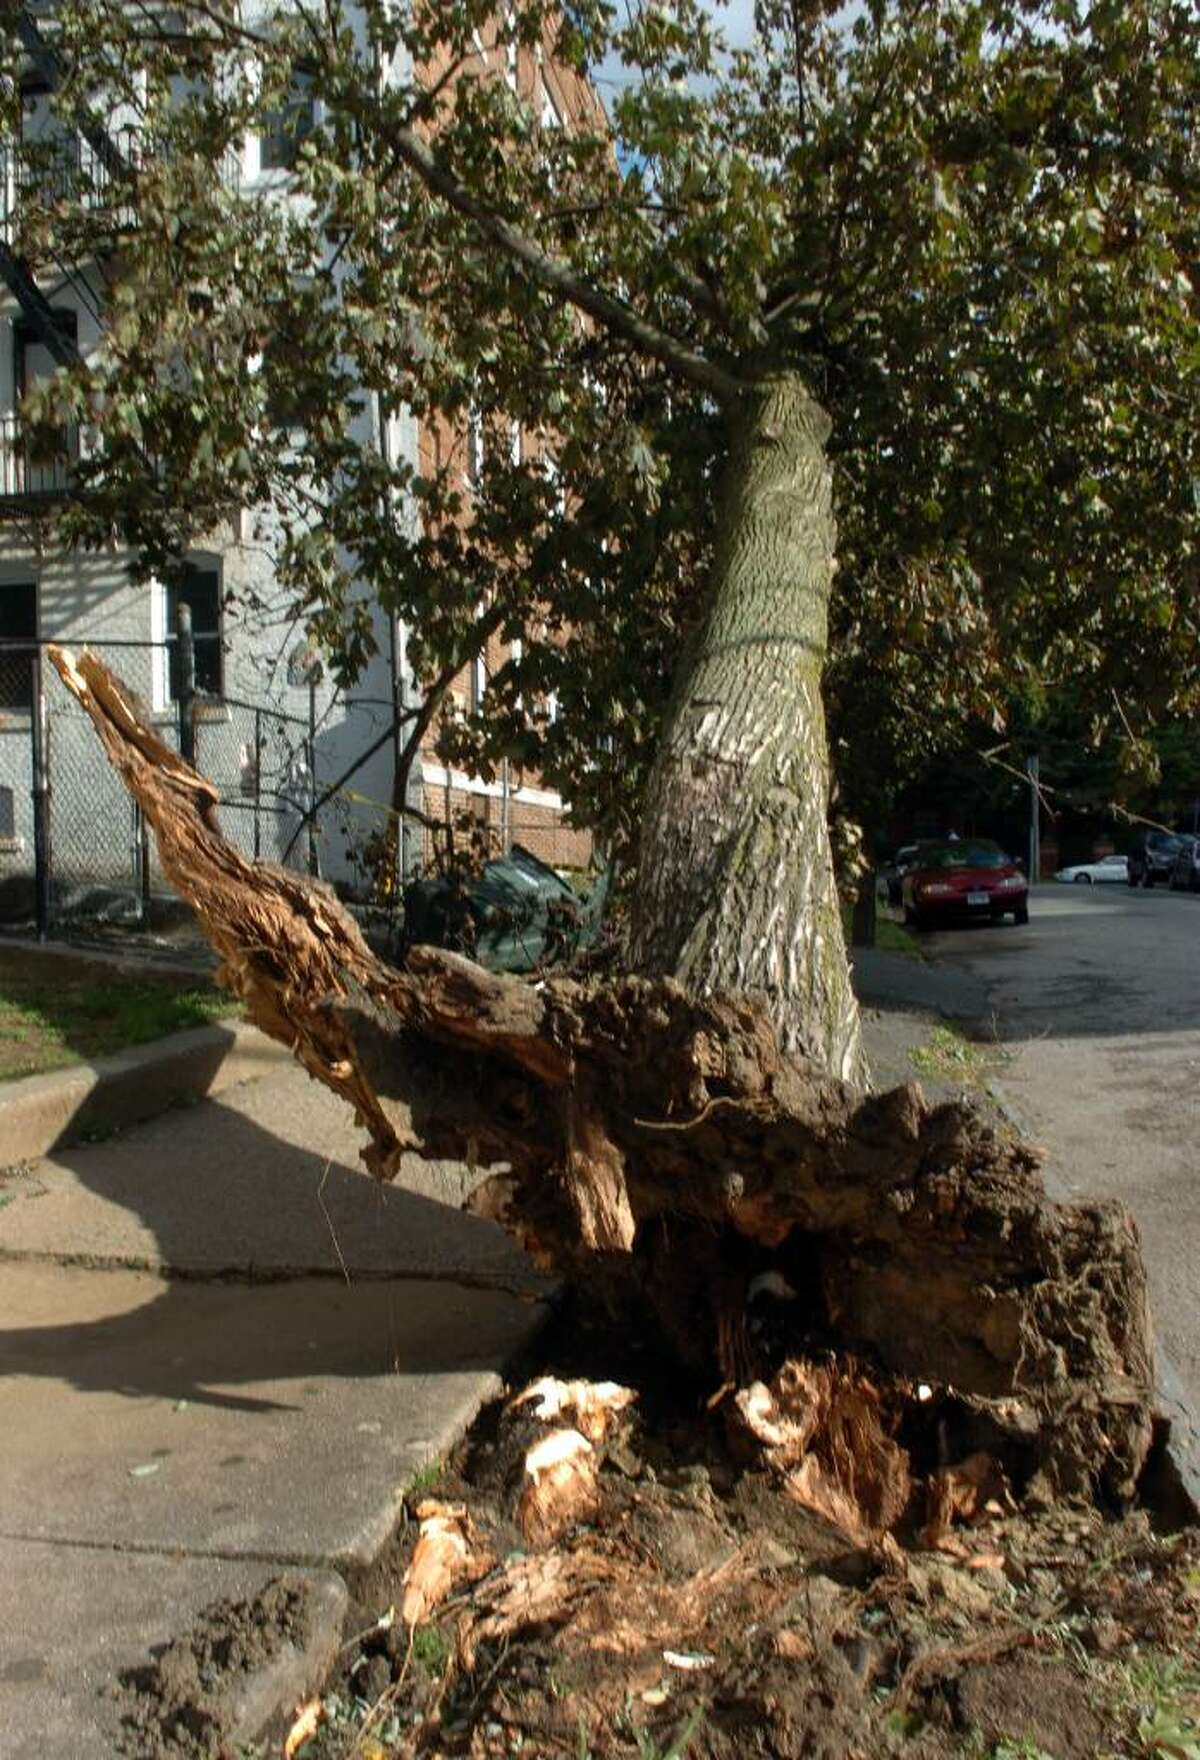 Severe winds downed this tree along Sanford Place in Bridgeport, Conn. on Wednesday Oct. 07, 2009.